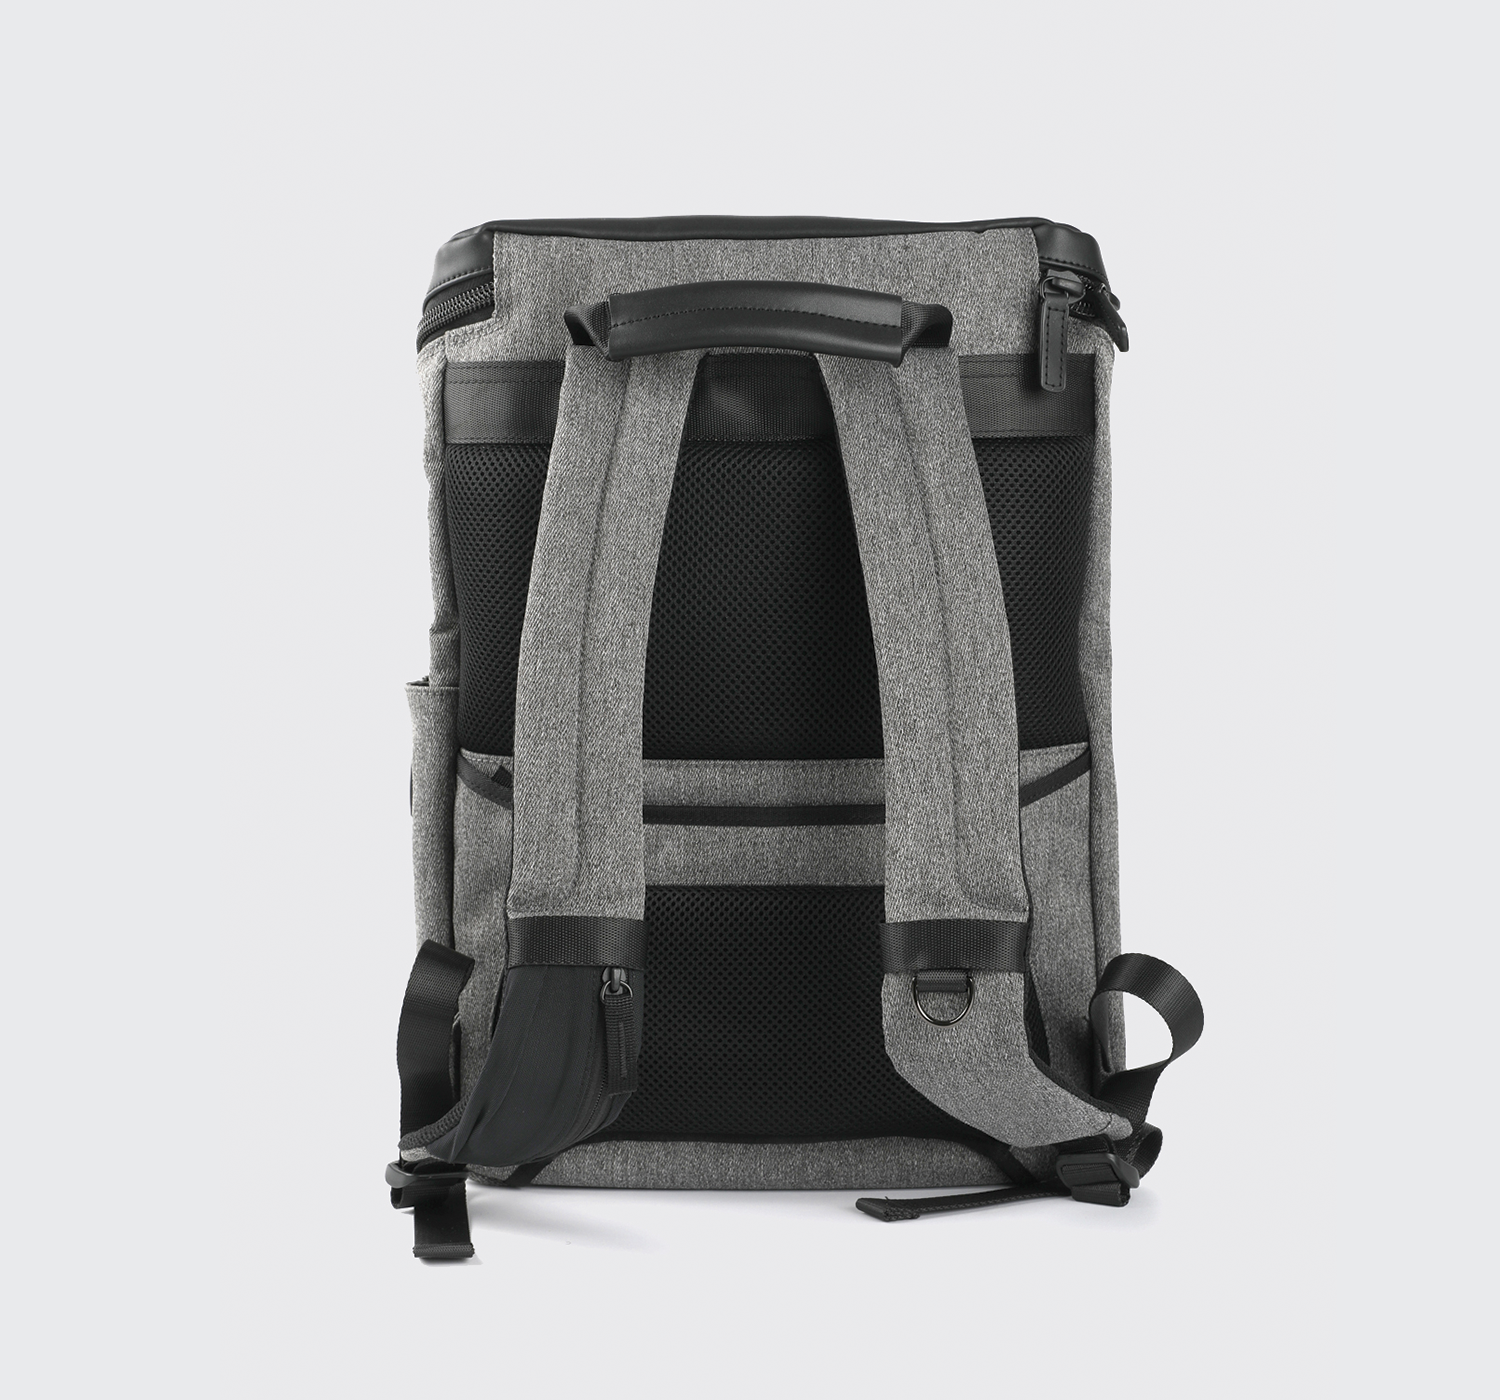 Venque Venque Amsterdam 2.0 - Grey/Black Edition